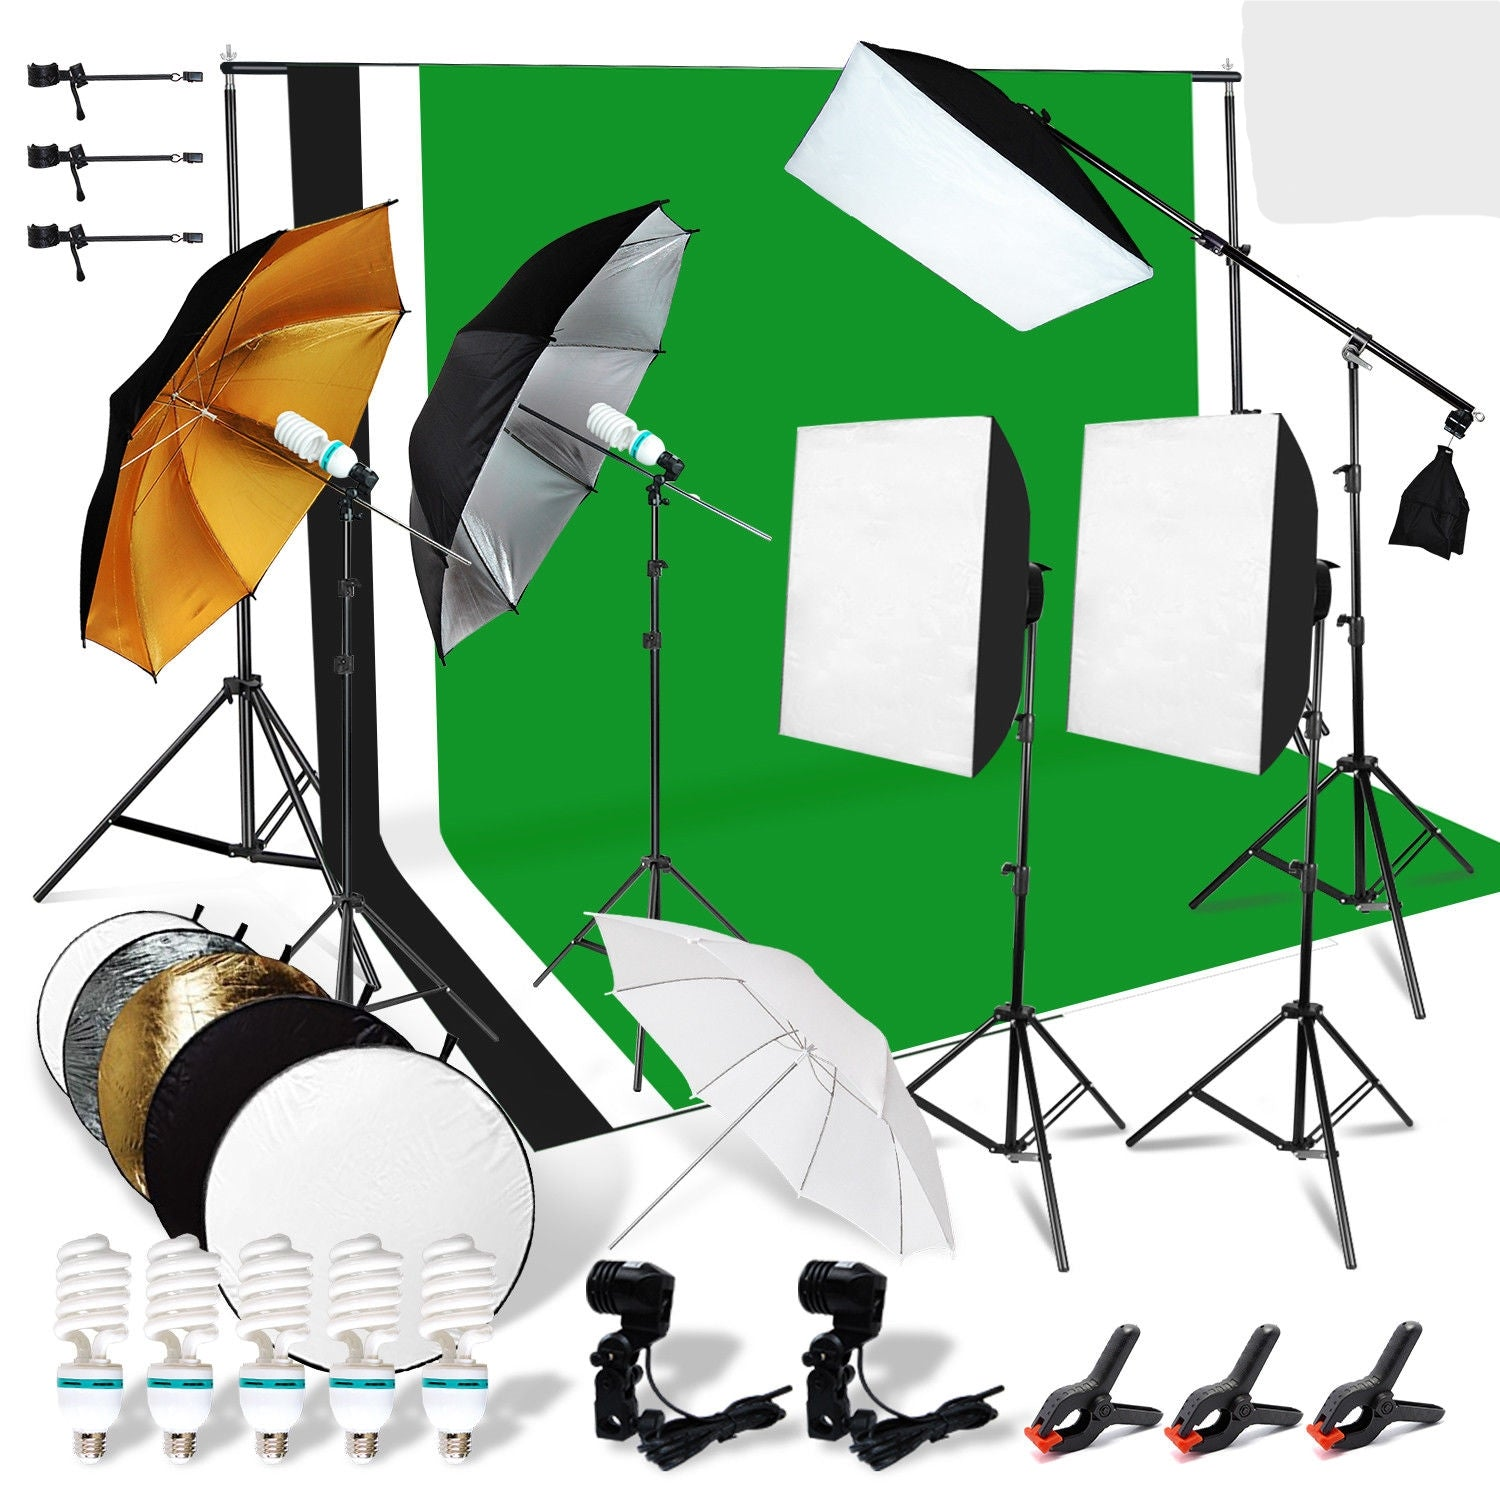 MEGA 30-piece Studio Kit (3-point lighting, reflectors, umbrellas, backdrops, stands, and more)